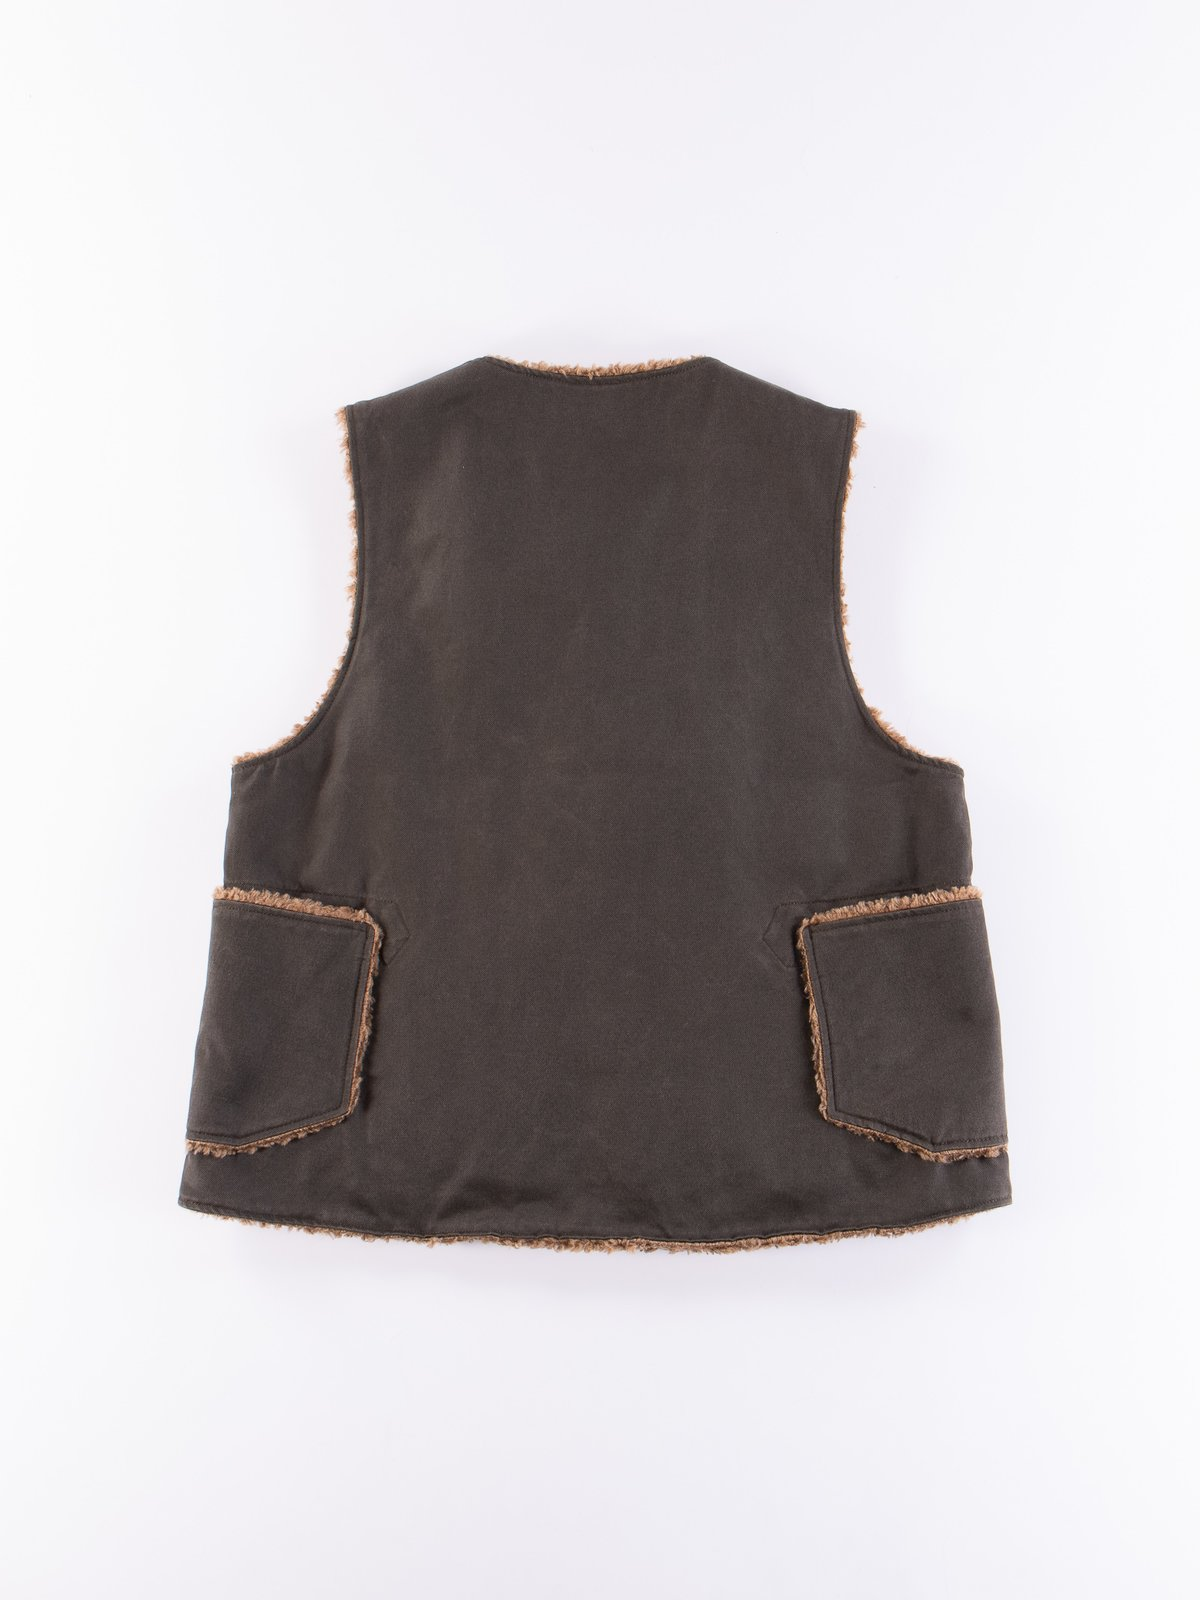 Dark Olive Coated Twill Over Vest - Image 5